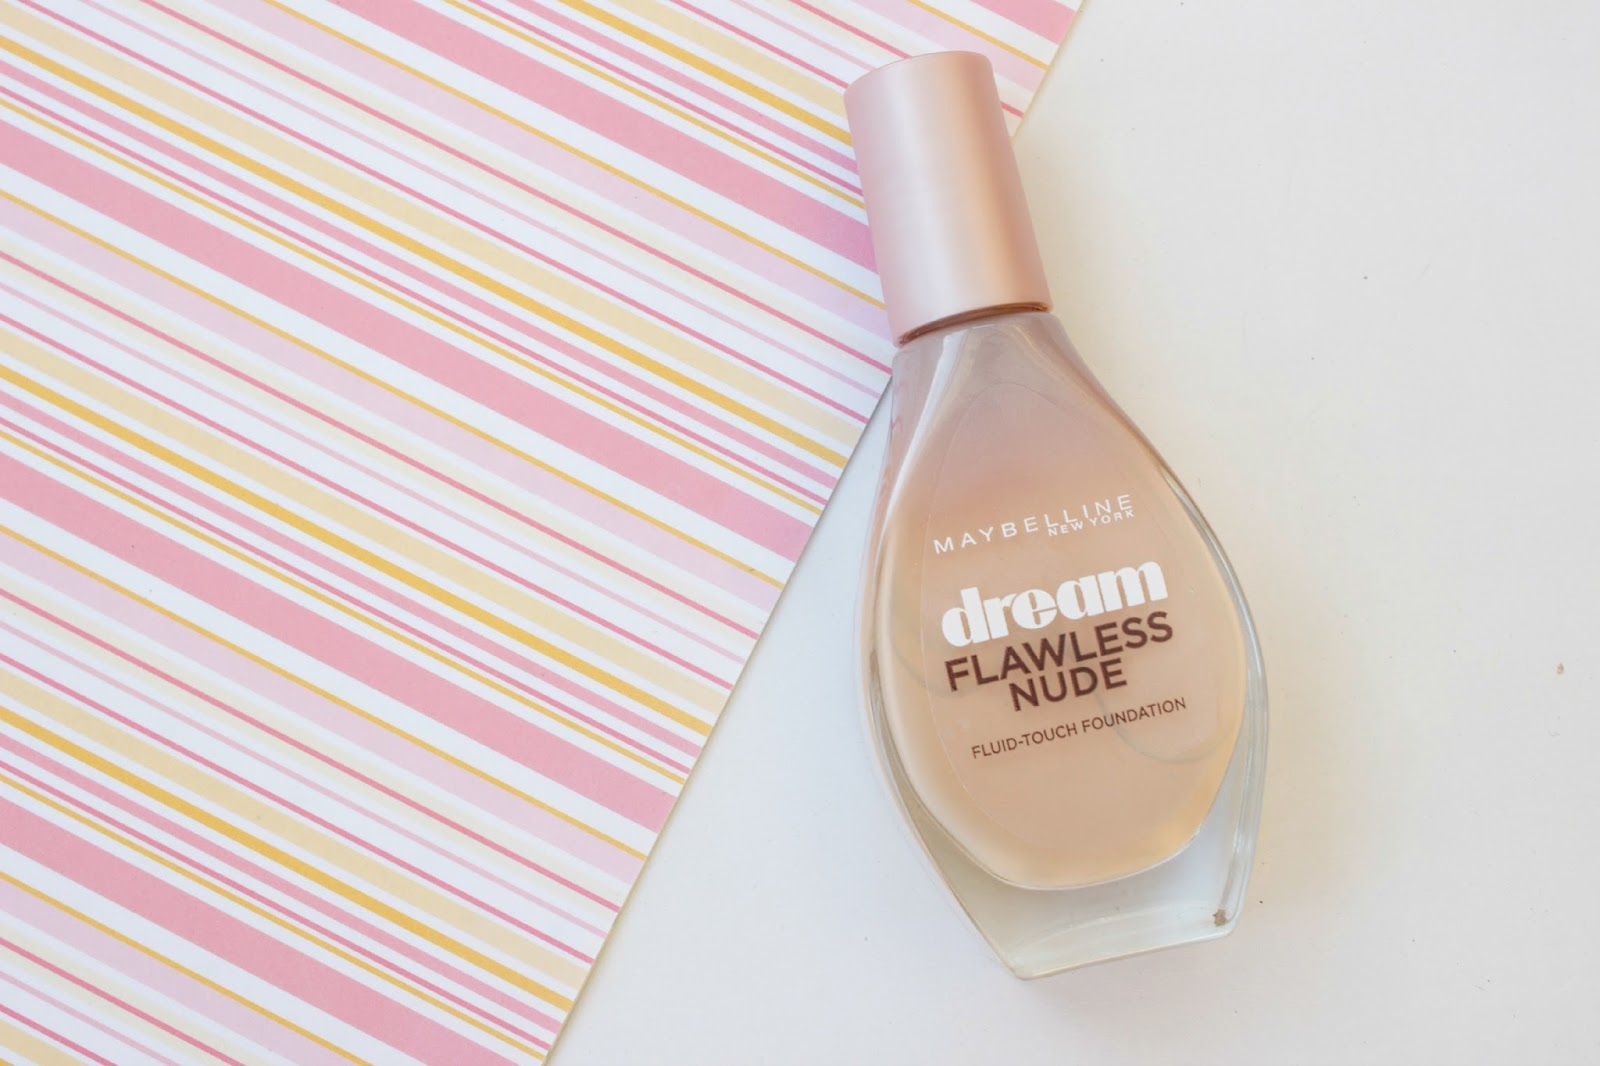 Maybelline Dream Flawless Nude Fluid-Touch Foundation